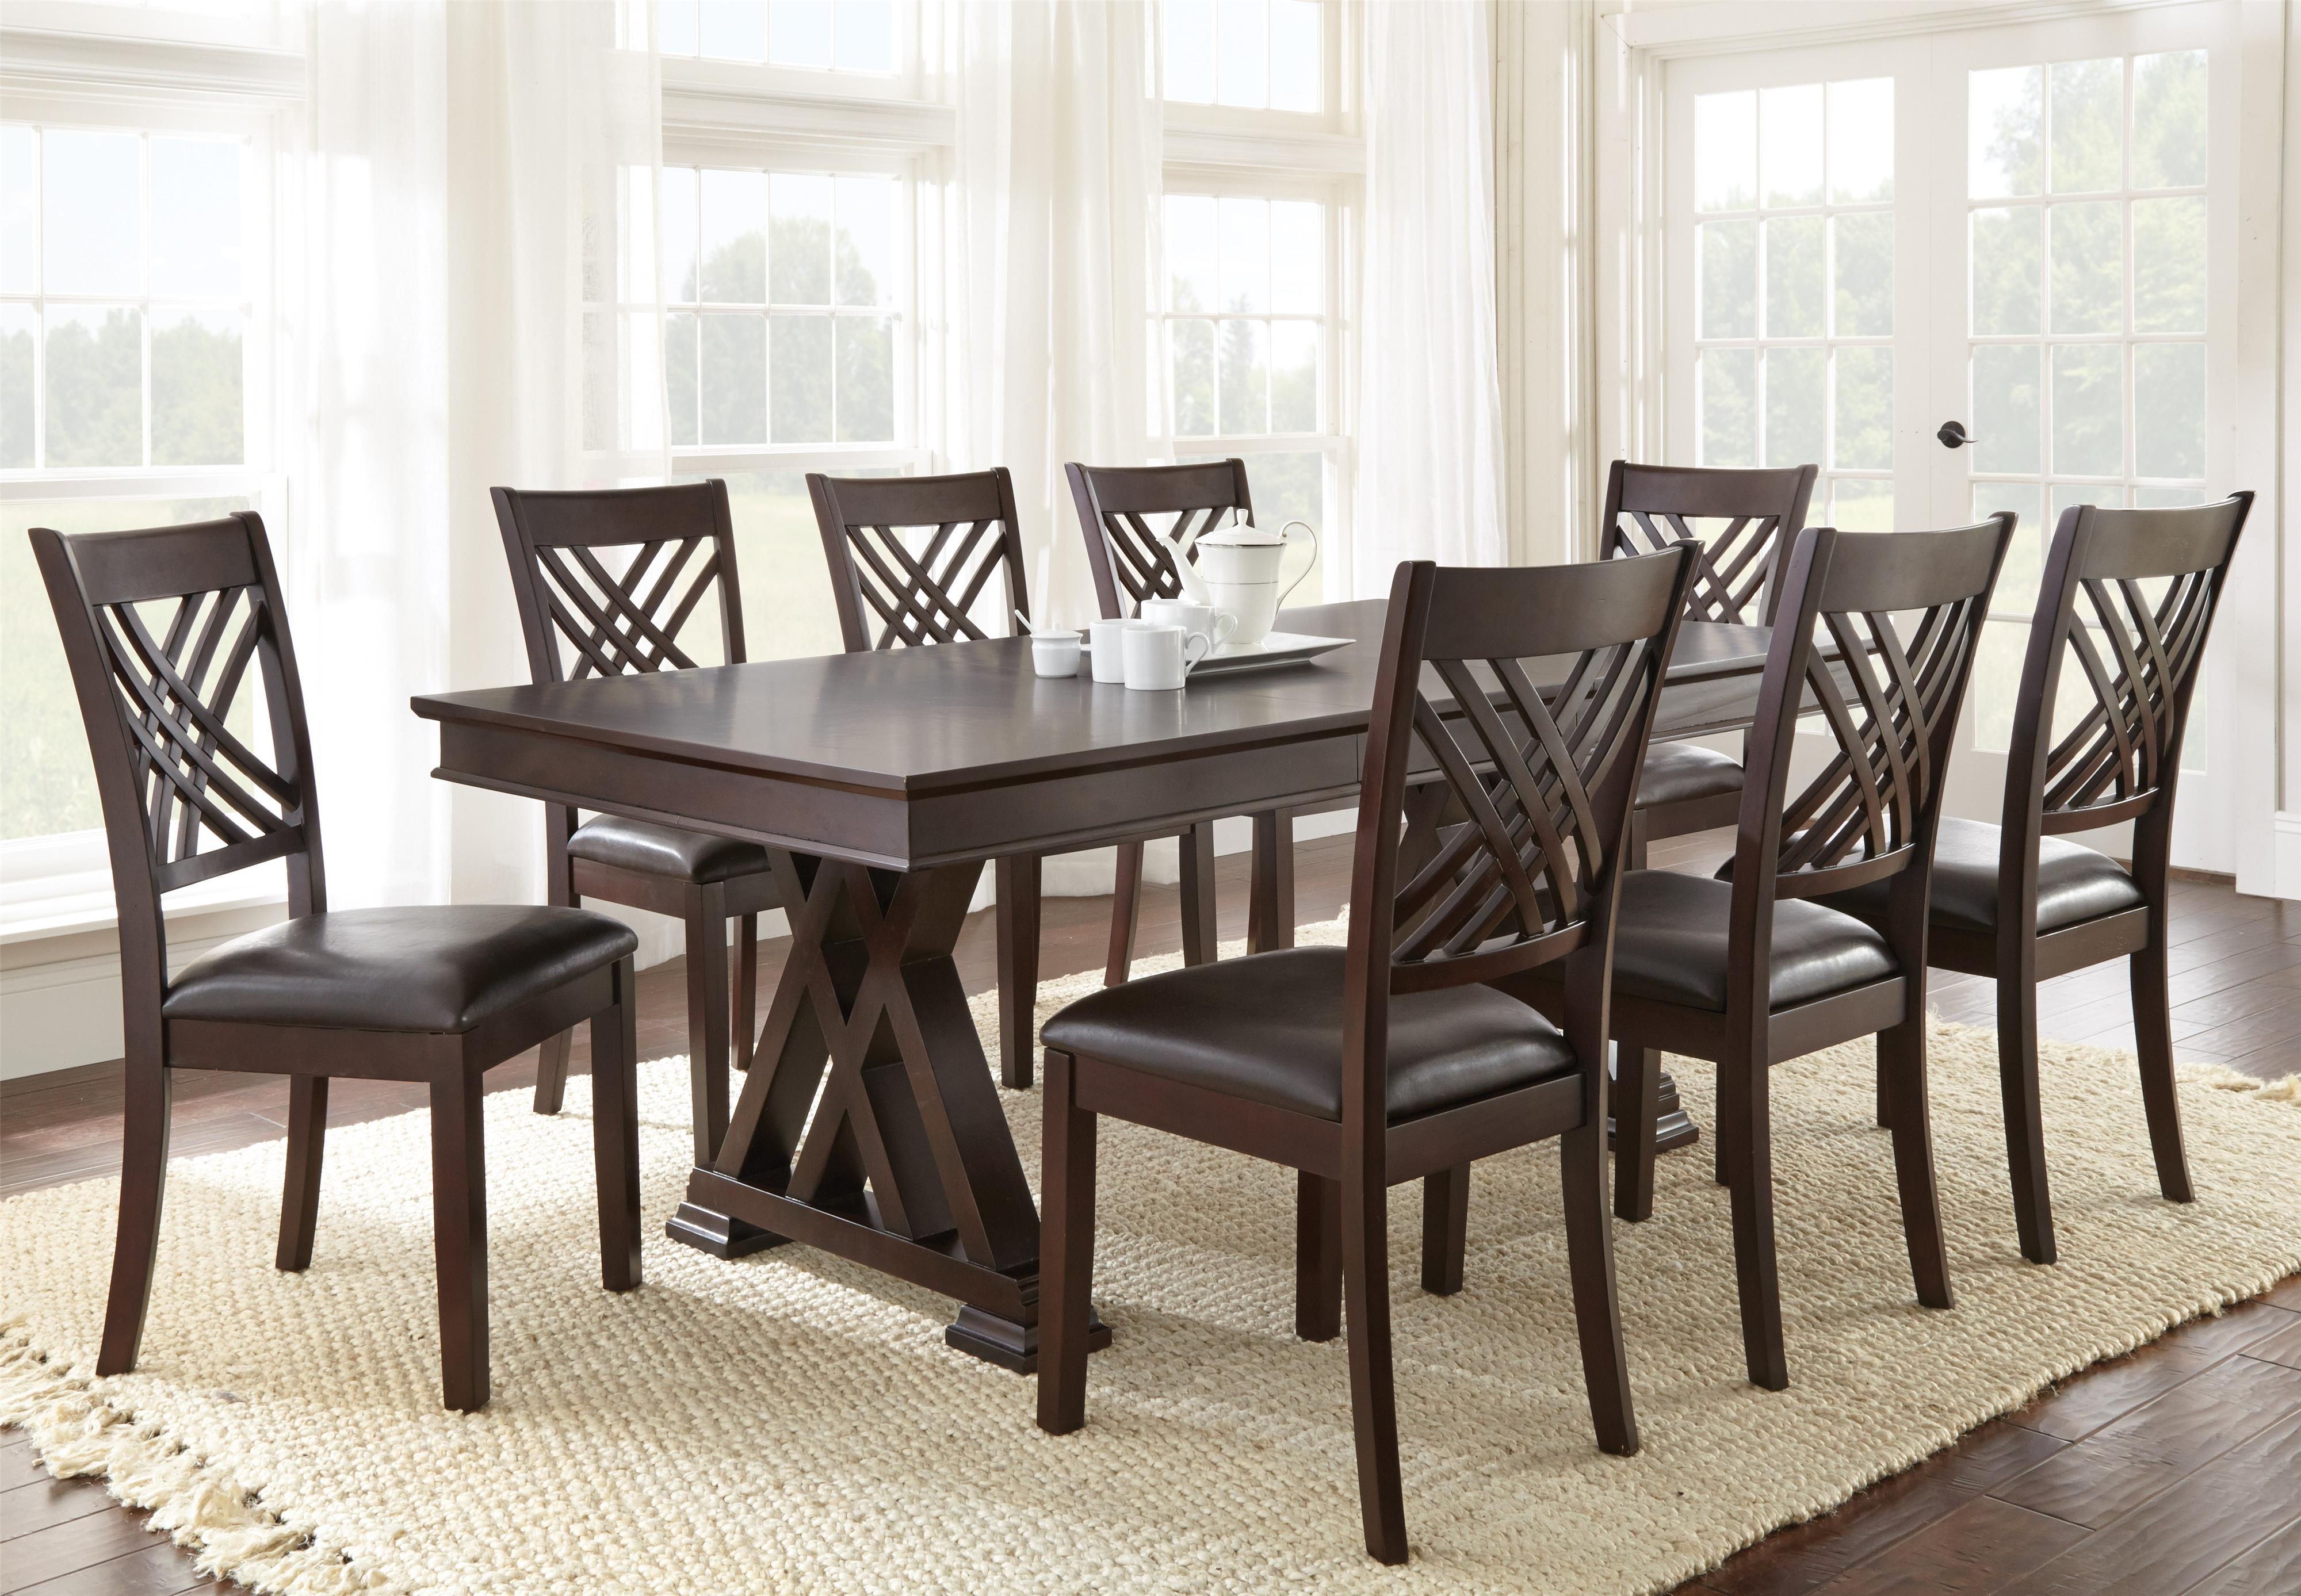 Adrian 9 Piece Table & Chair Set by Steve Silver at Walker's Furniture